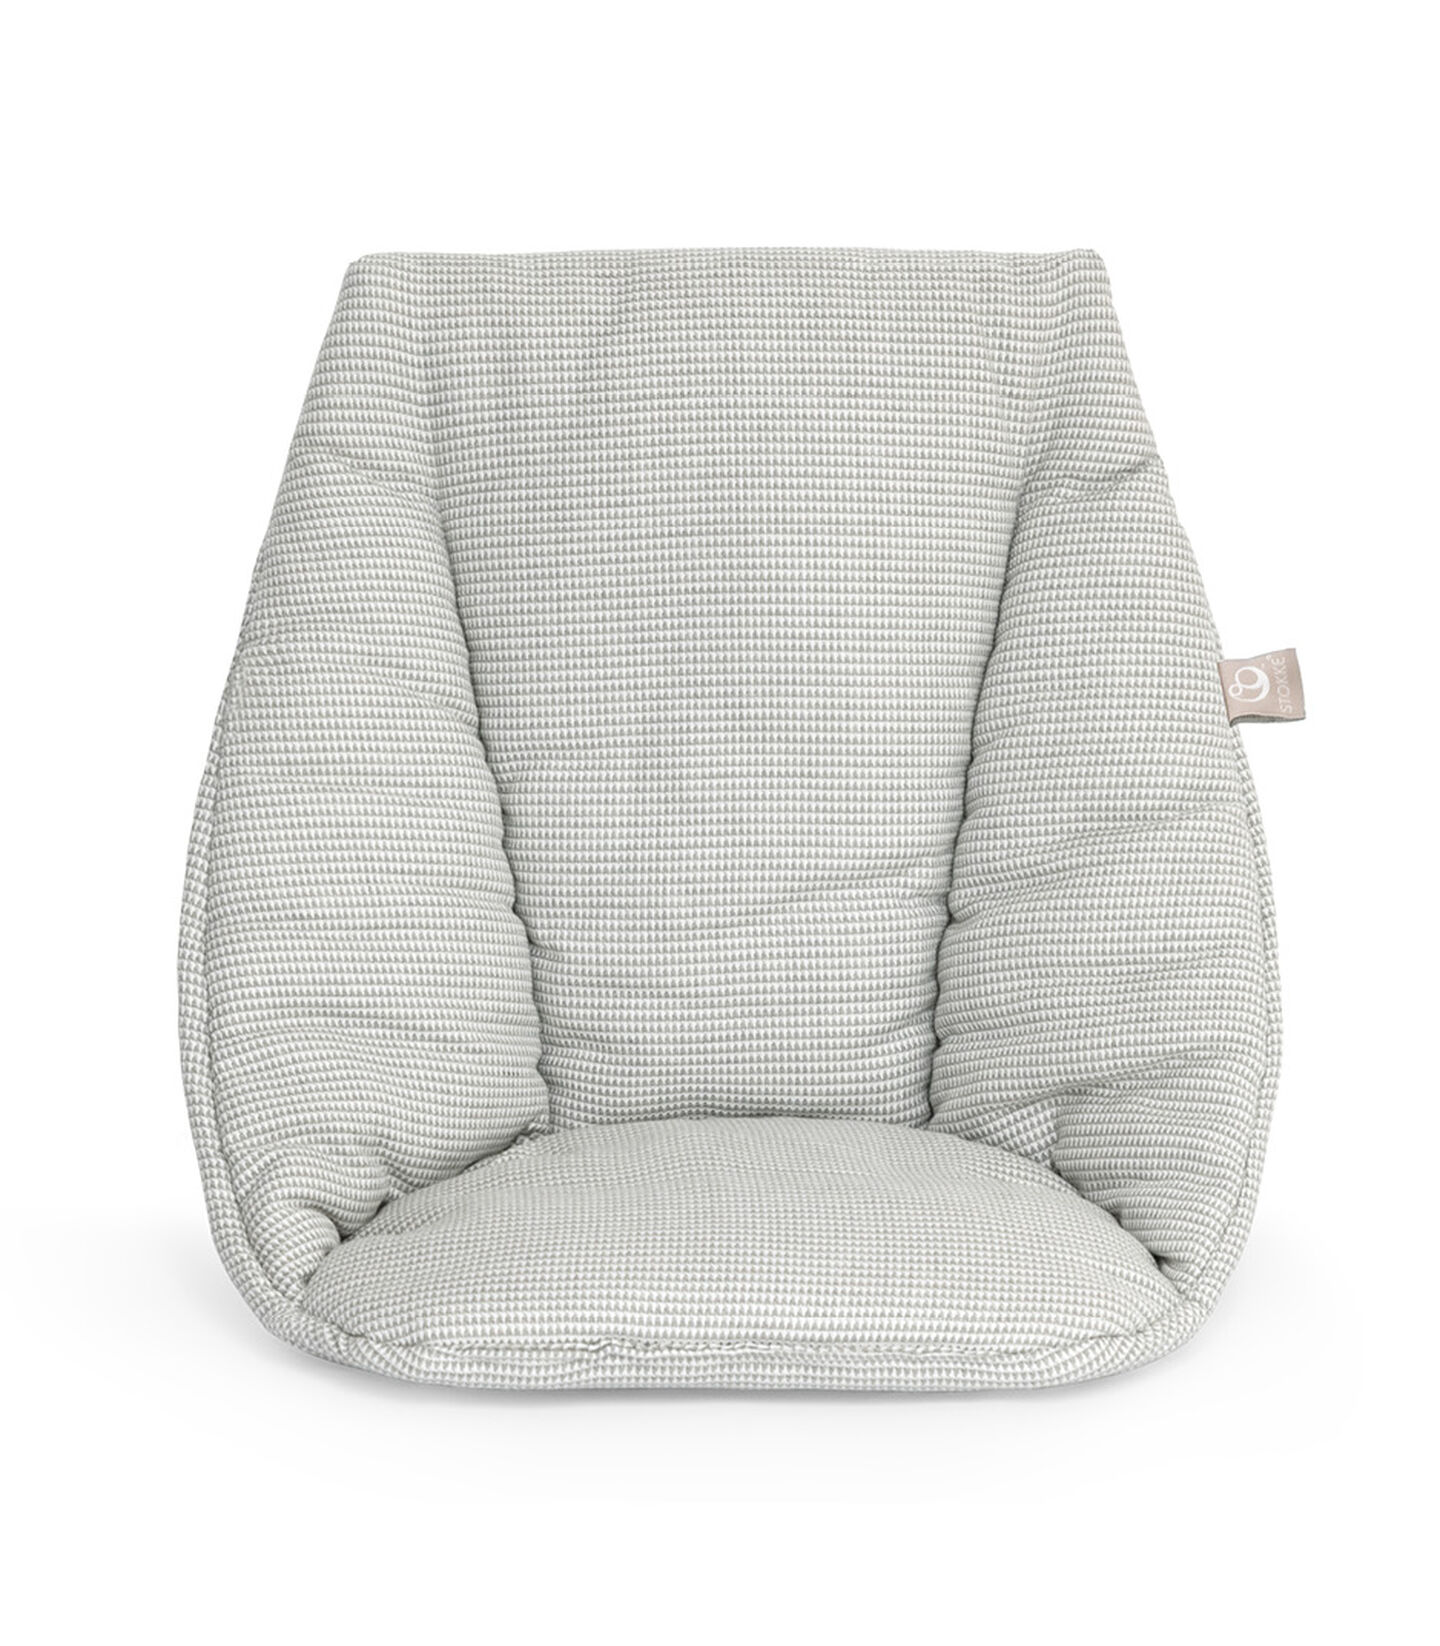 Tripp Trapp® Baby Cushion Nordic Grey, Nordic Grey, mainview view 2